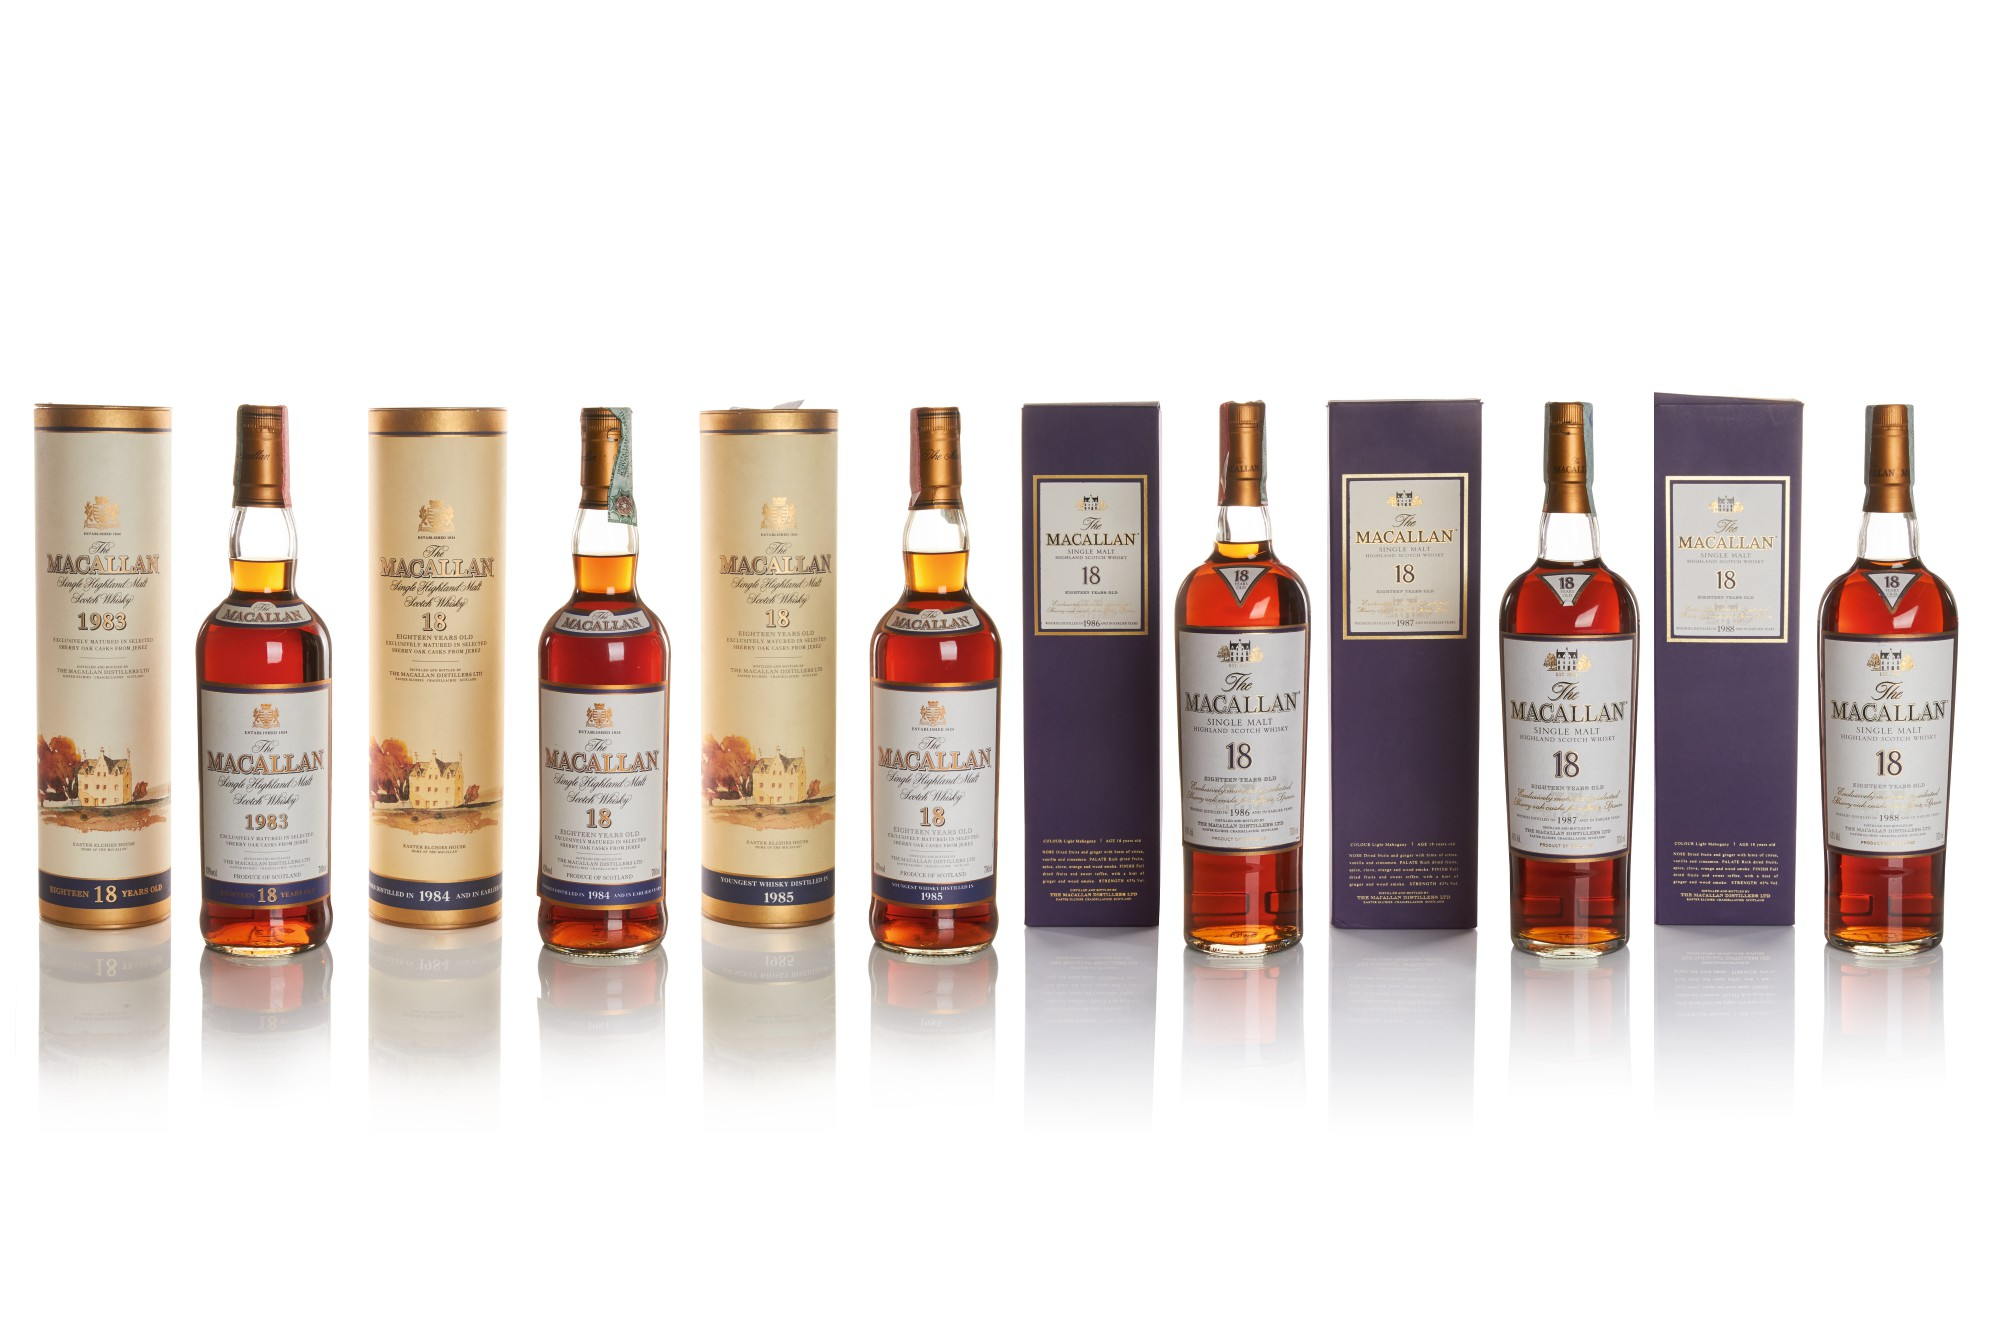 THE MACALLAN 18 YEAR OLD 43.0 ABV